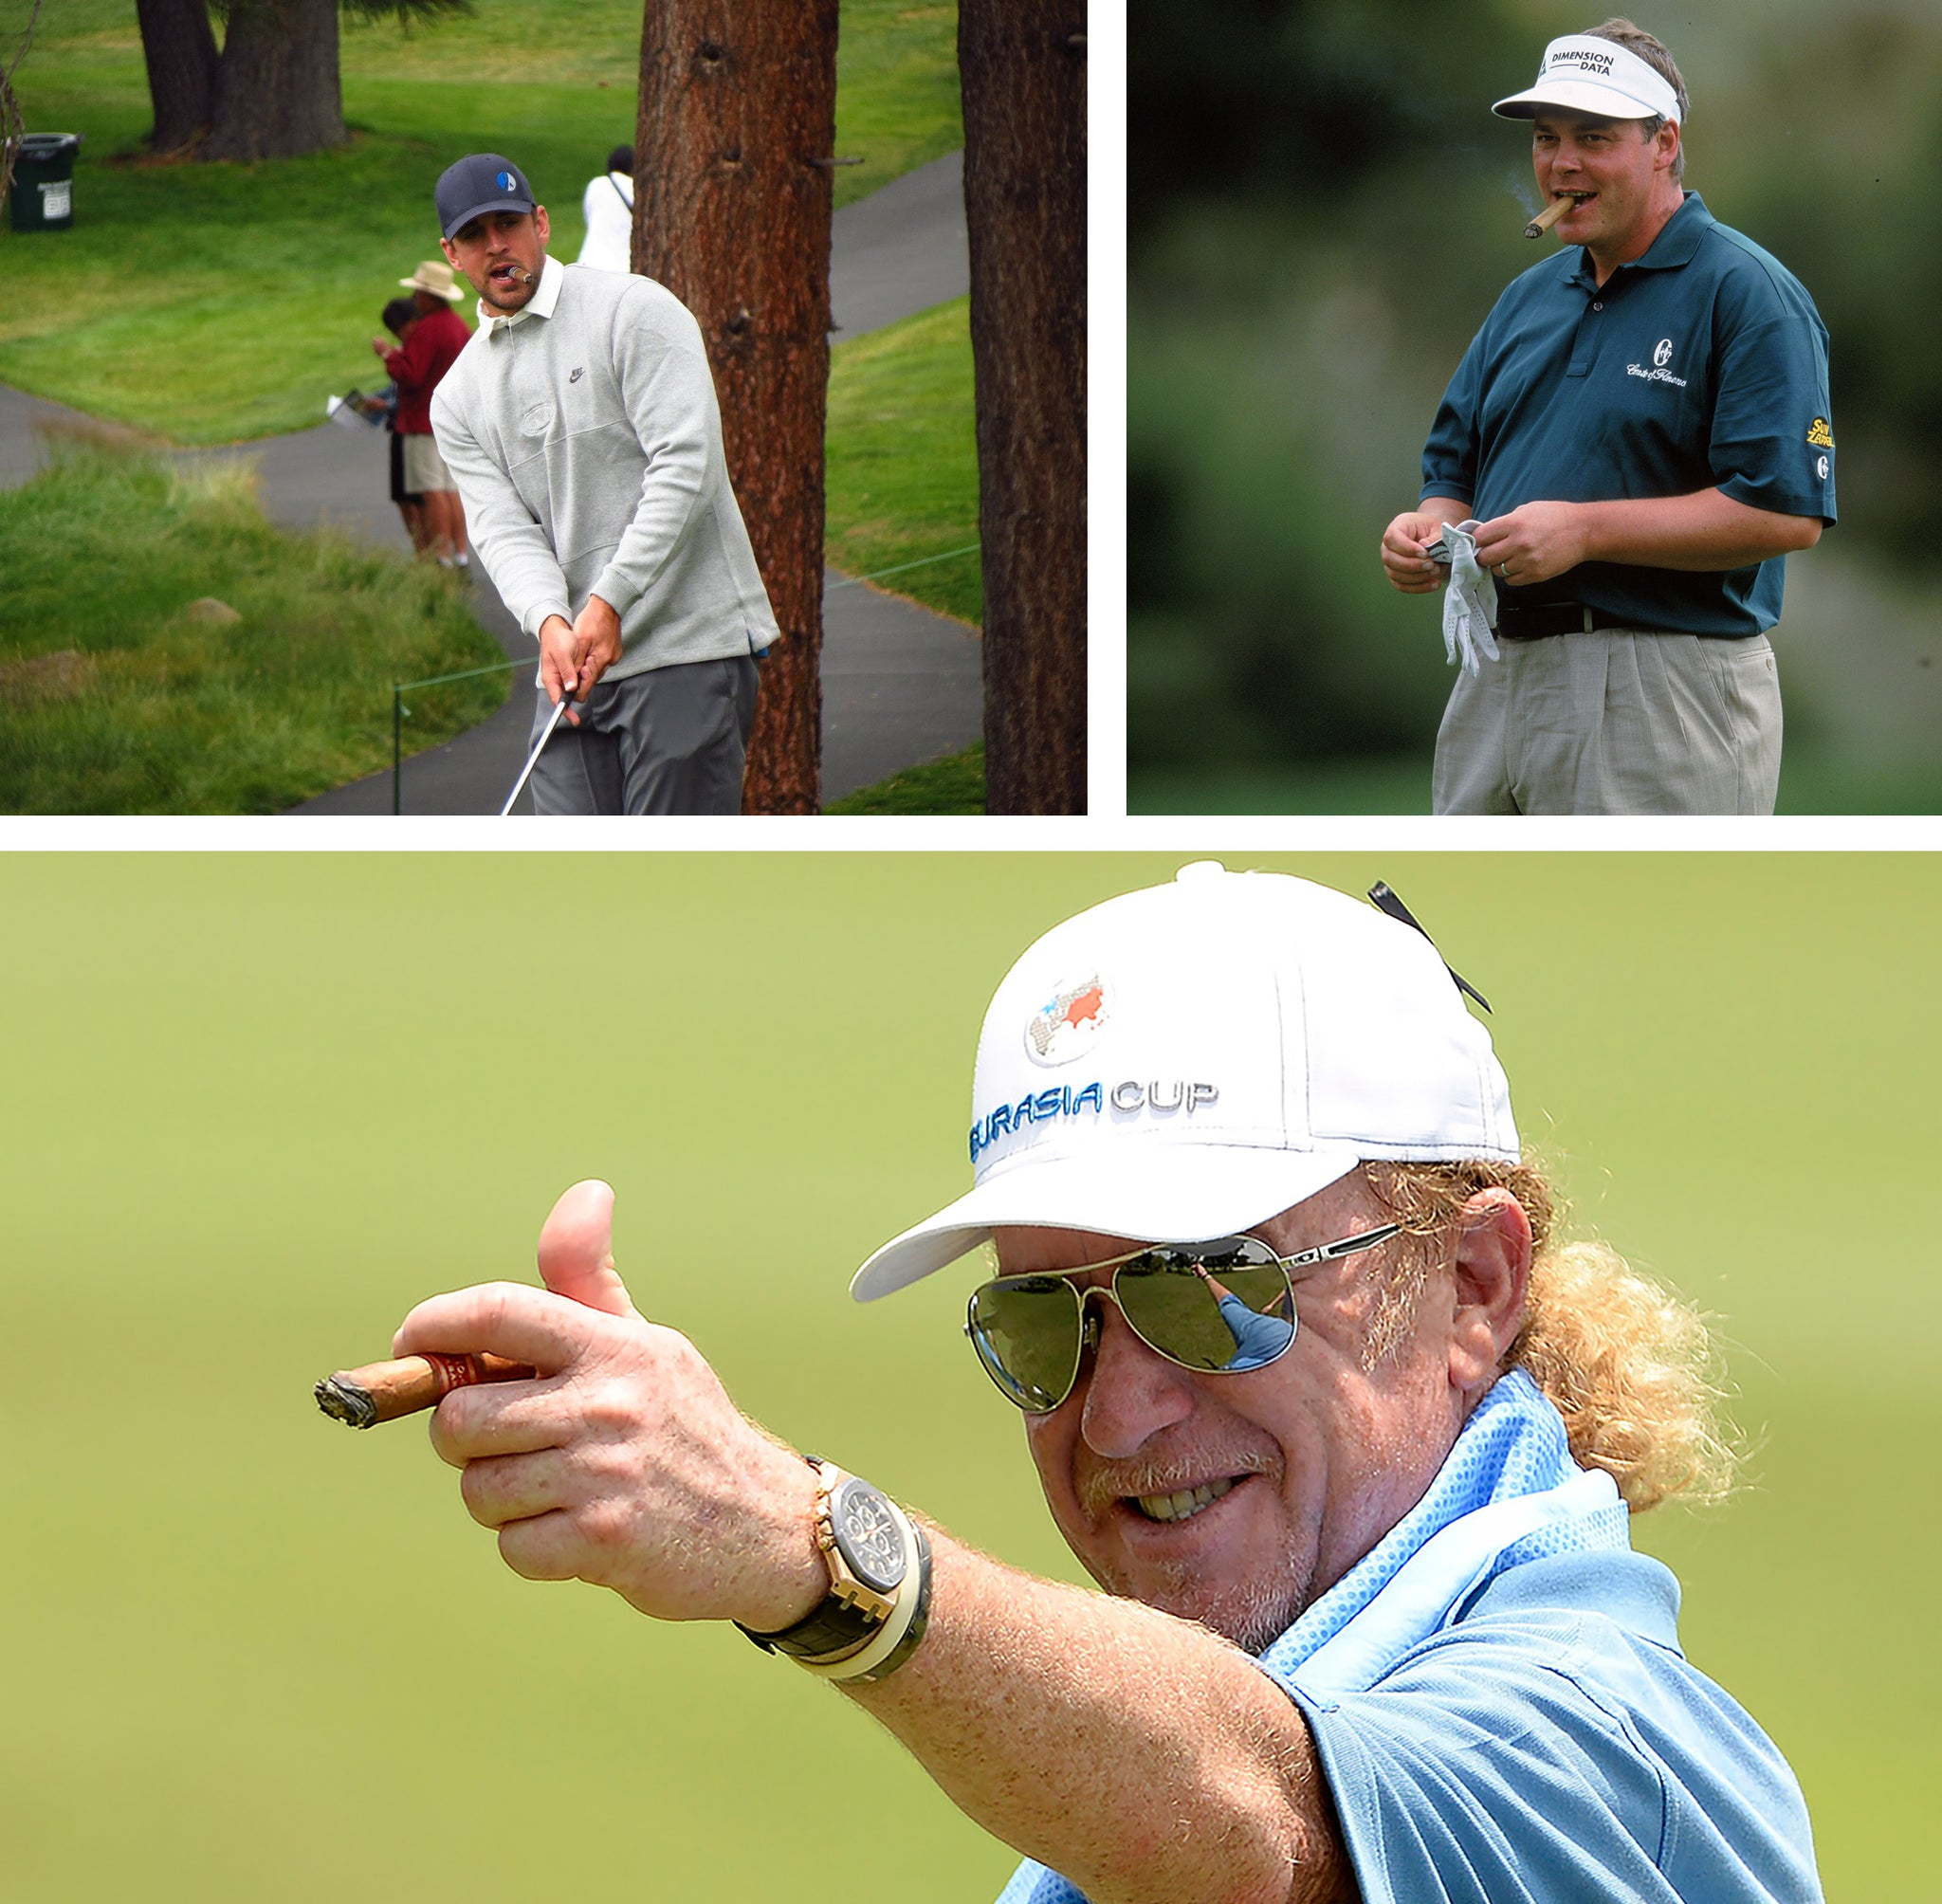 professional golfers aaron rodgers darren clarke and miguel angel jimenez smoking cuban cigars during golf game